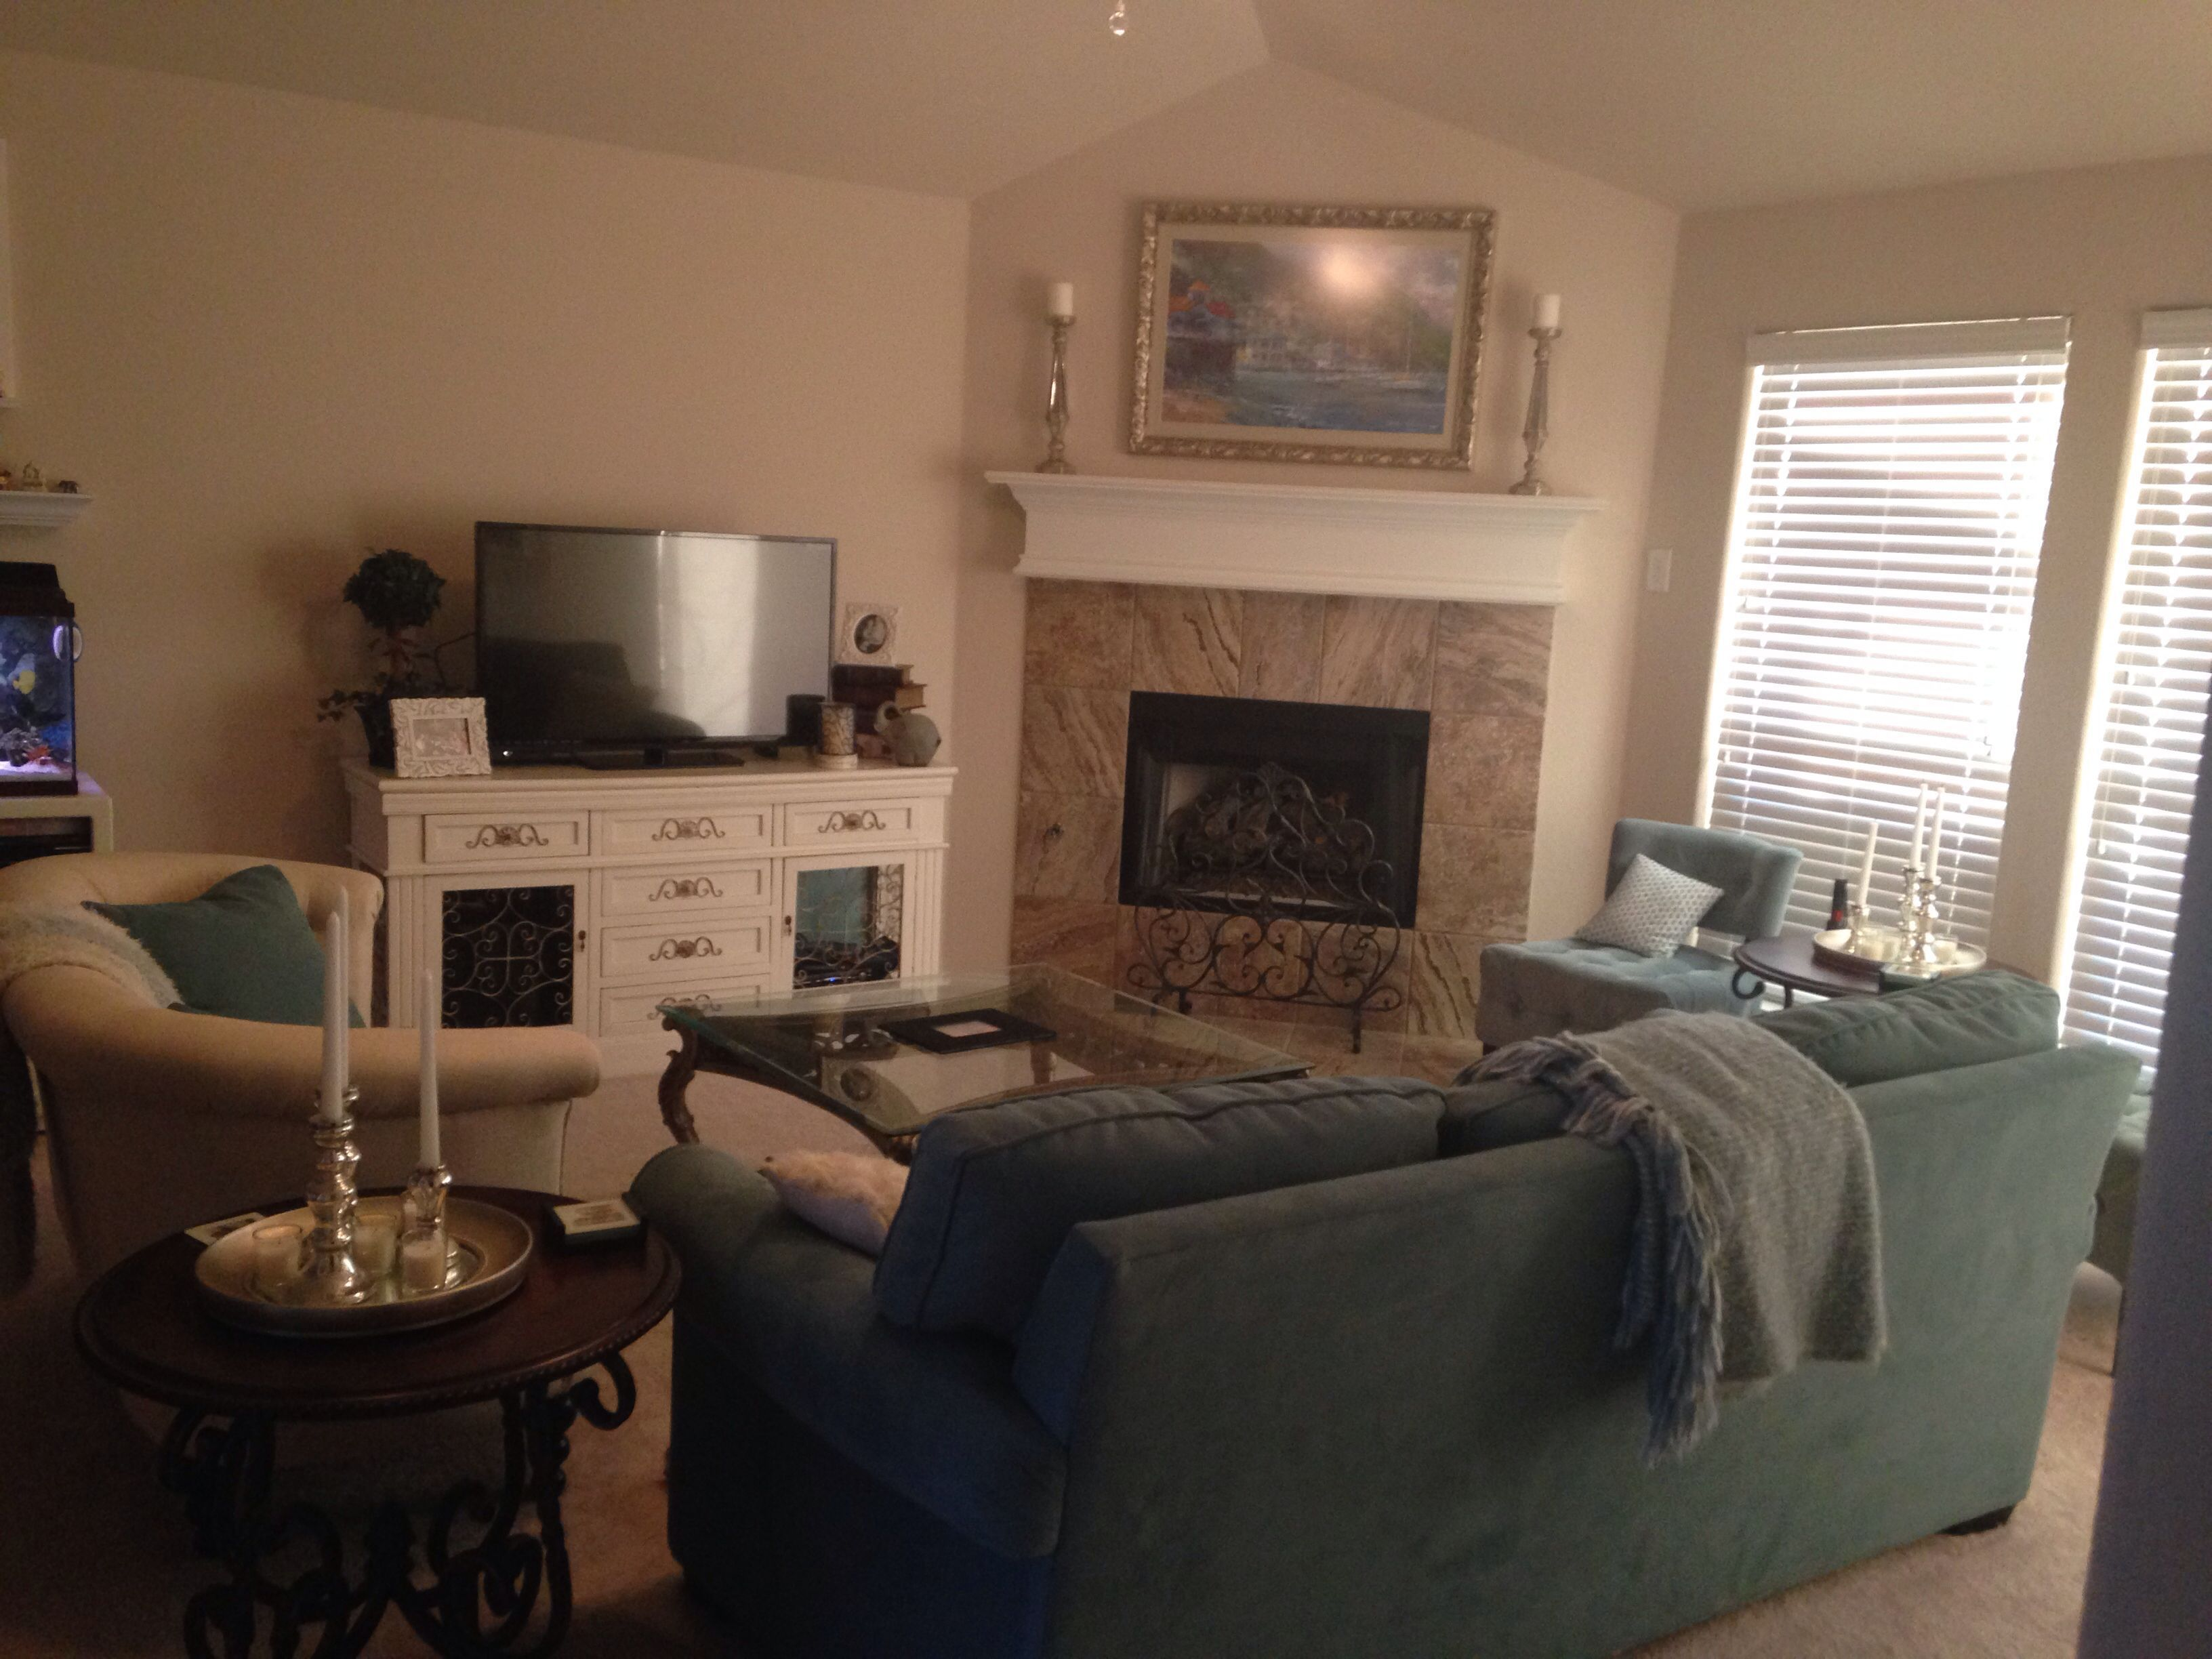 40 45 Furniture Placement With Fireplace Open Concept I